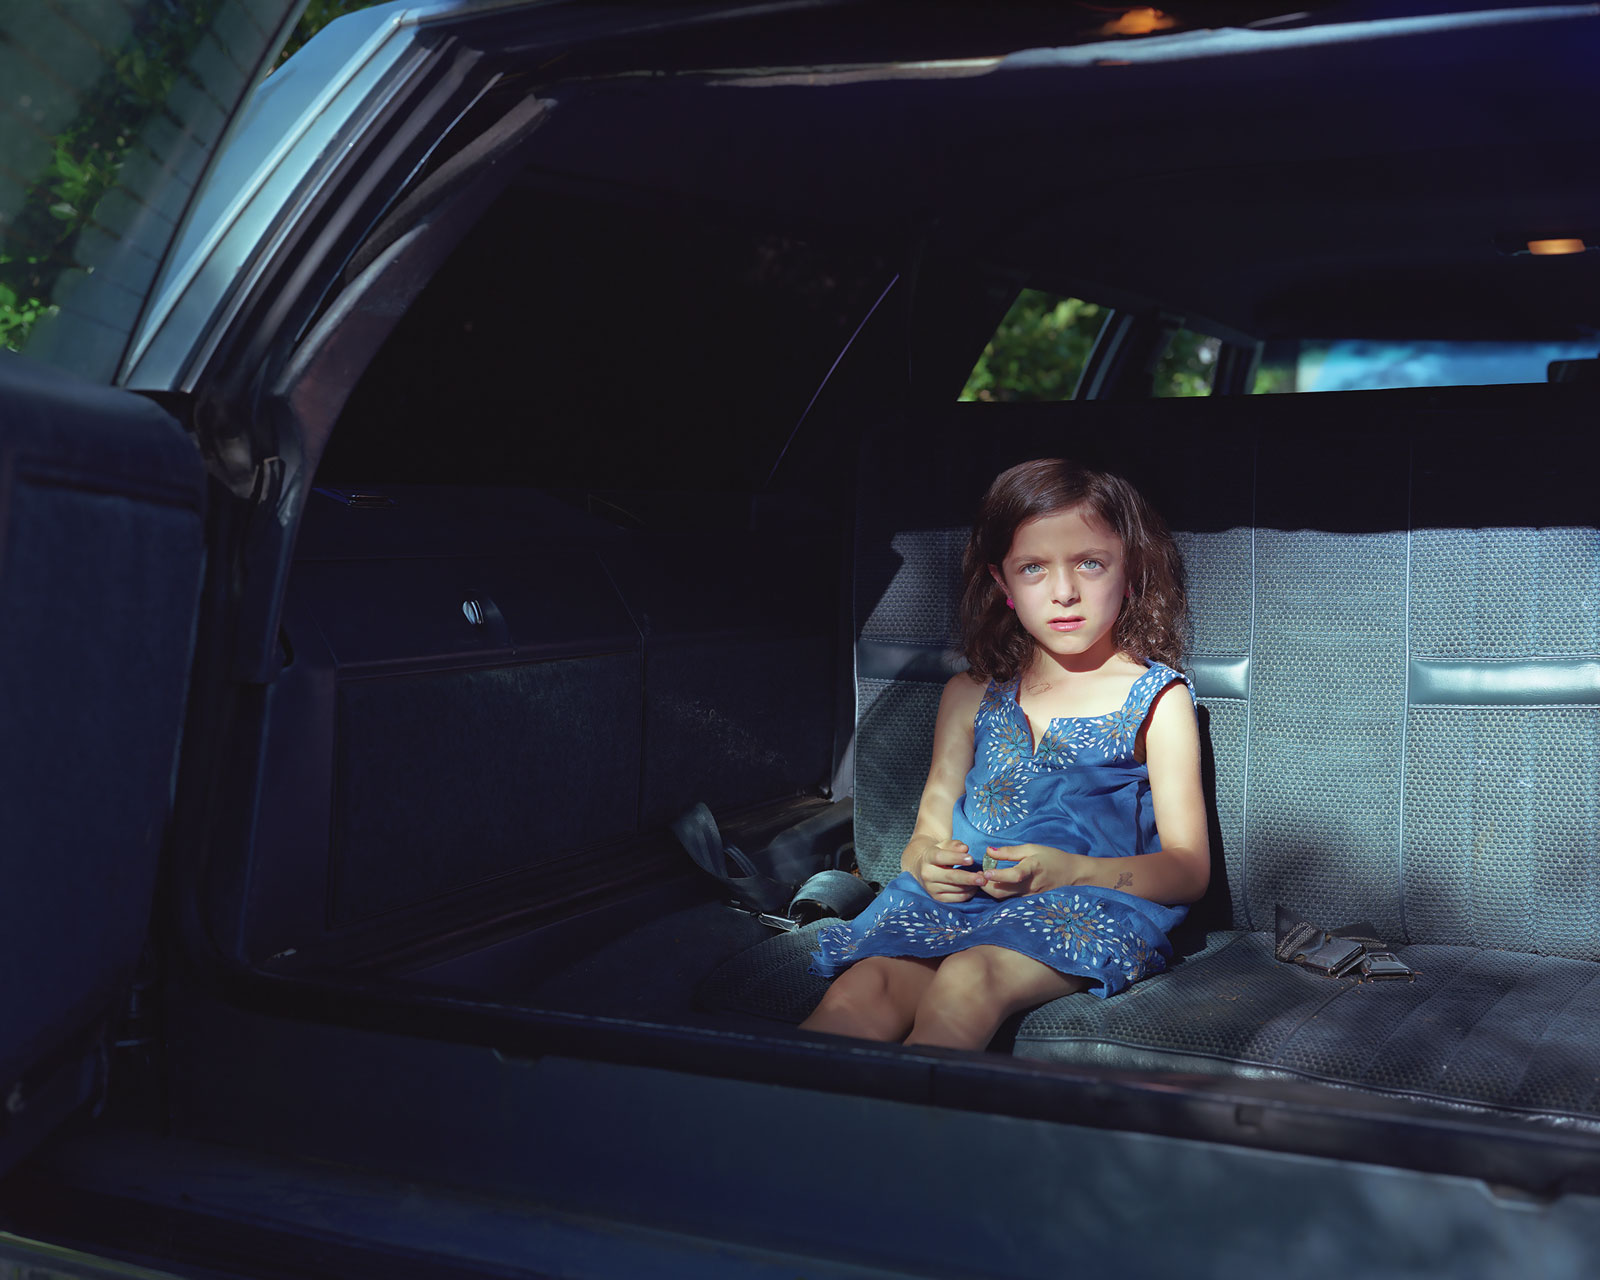 <i>Mavis in the Backseat </i>(2013) by Cynthia Henebry